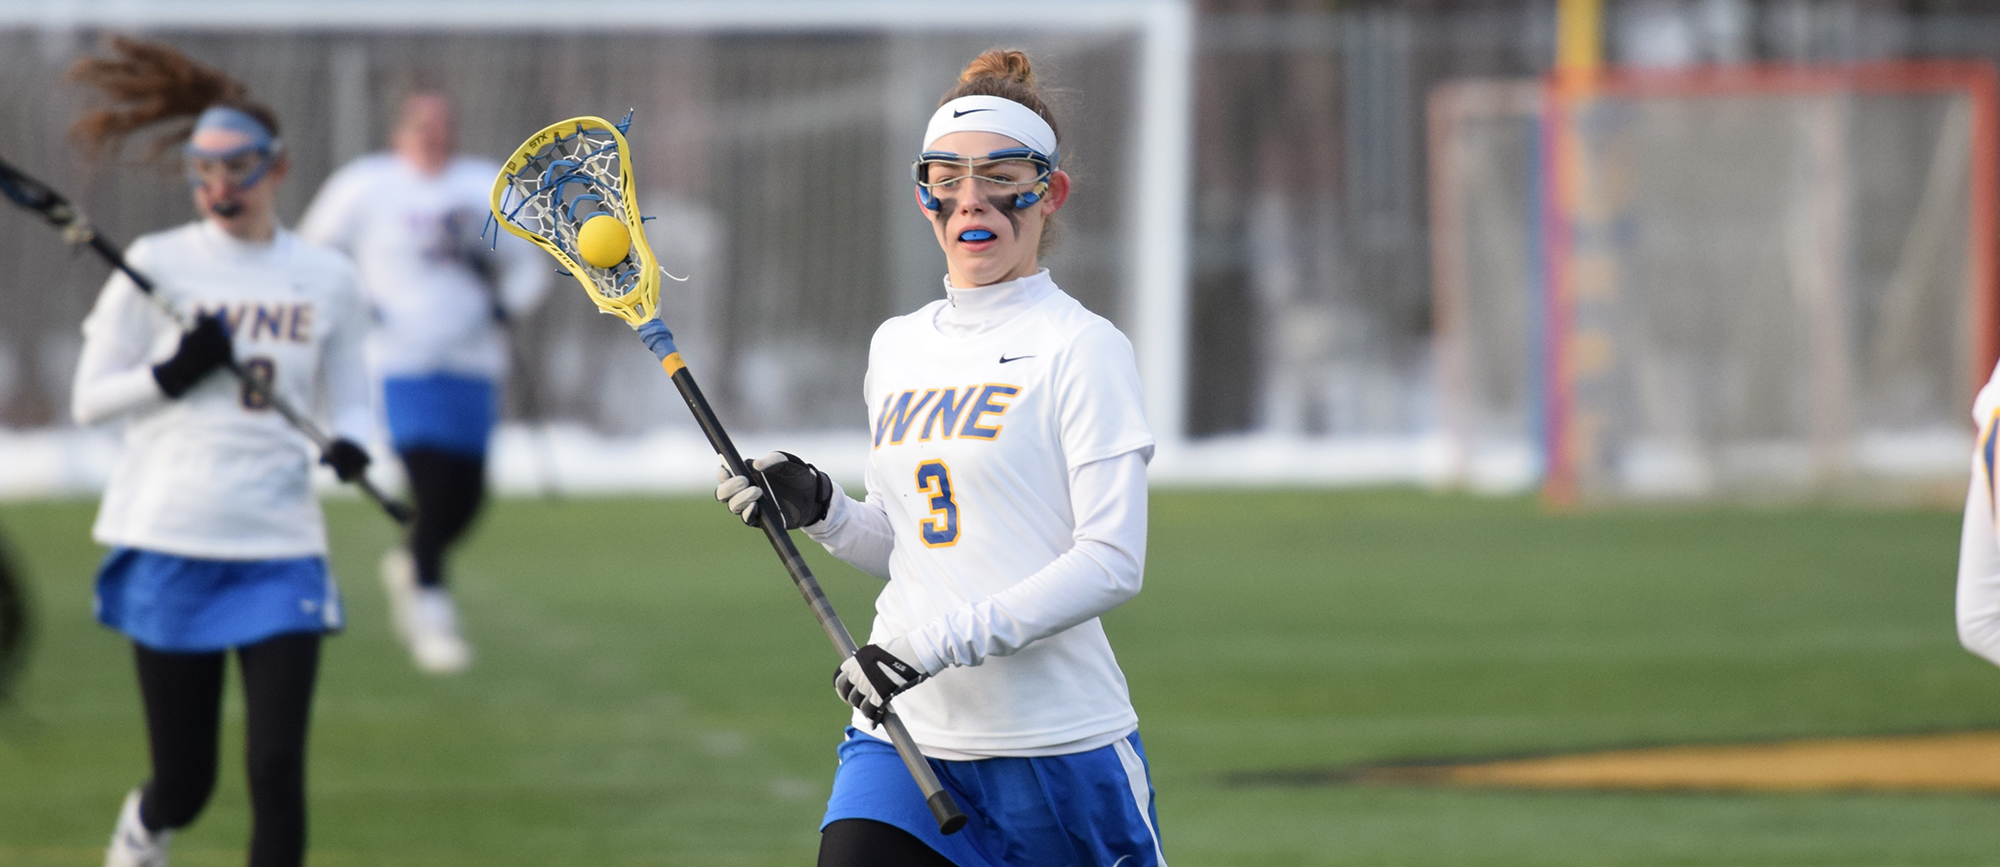 Freshman Reilly Miller recorded a season-high six points in Western New England's 14-9 win over Husson on Thursday. (Photo by Rachael Margossian)